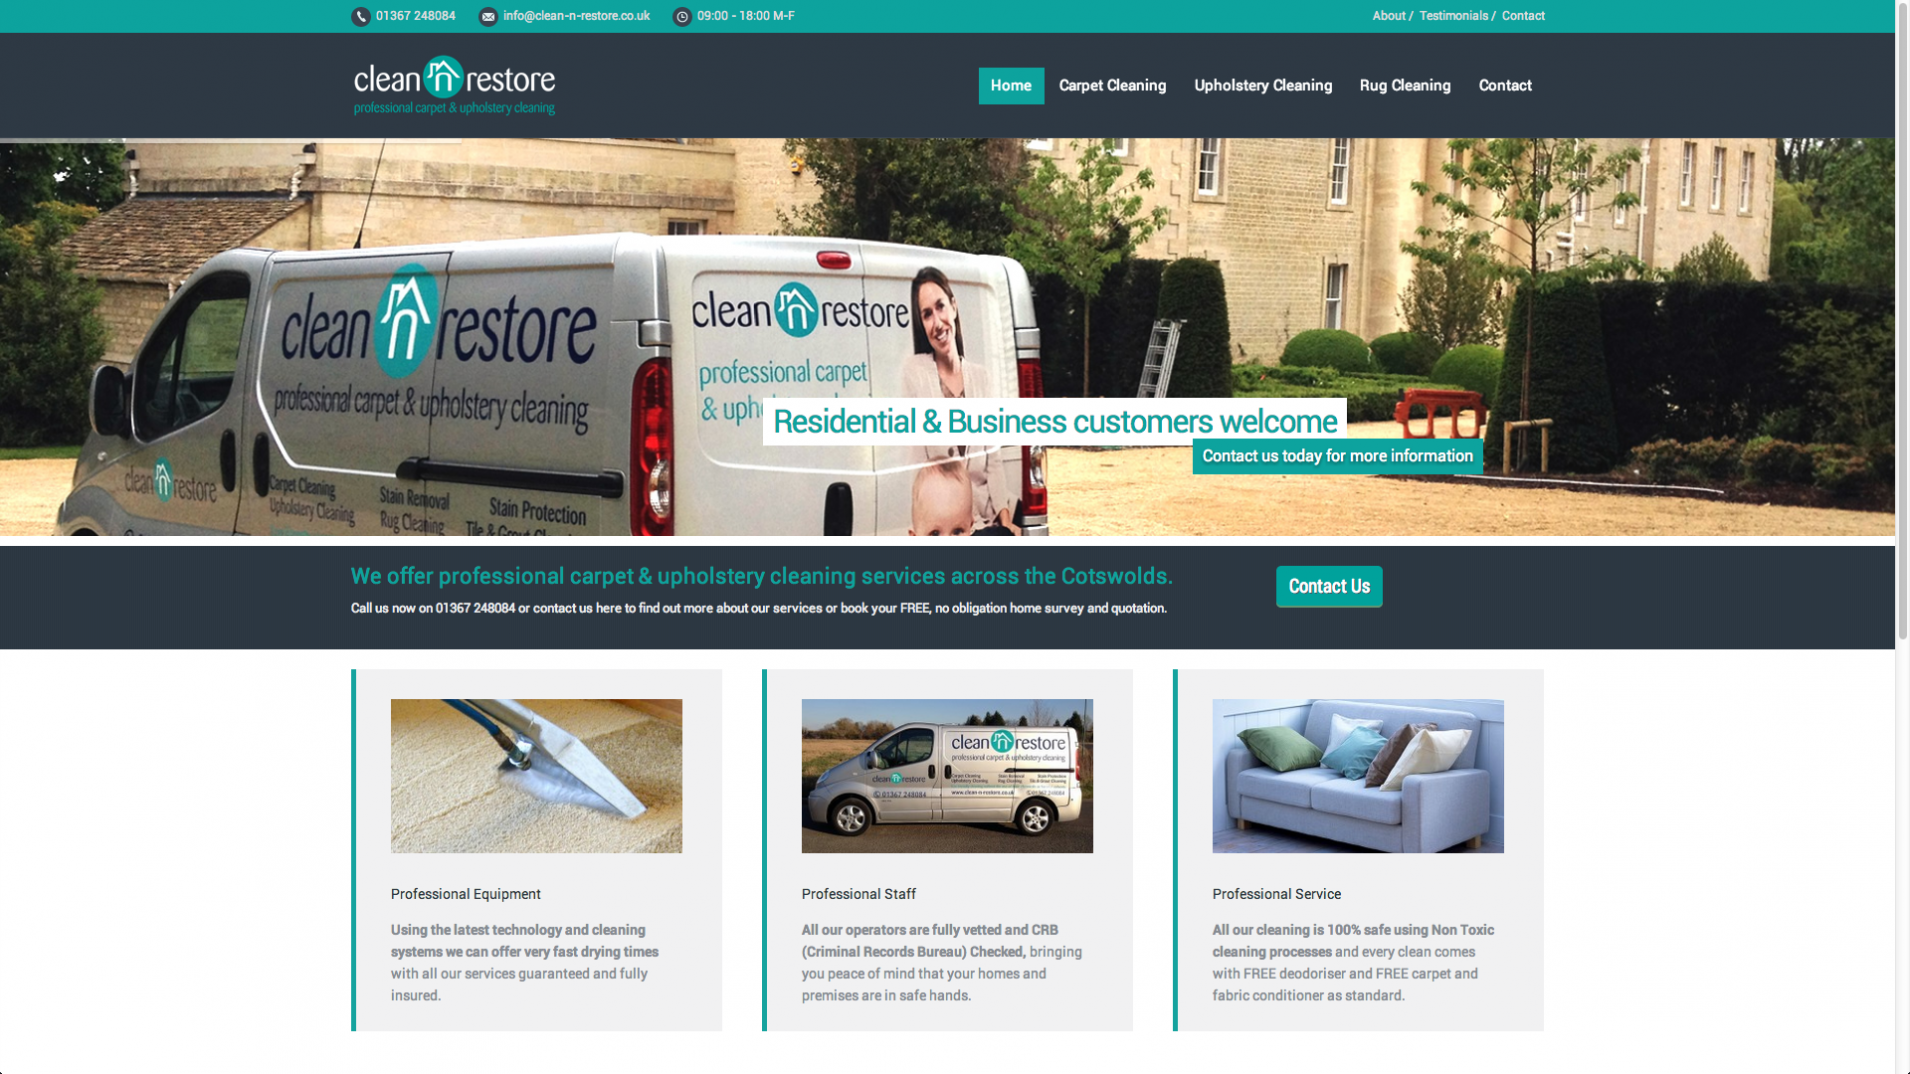 Screen Shot 2013 12 23 at 16.26.39 - Cleaning company website design service